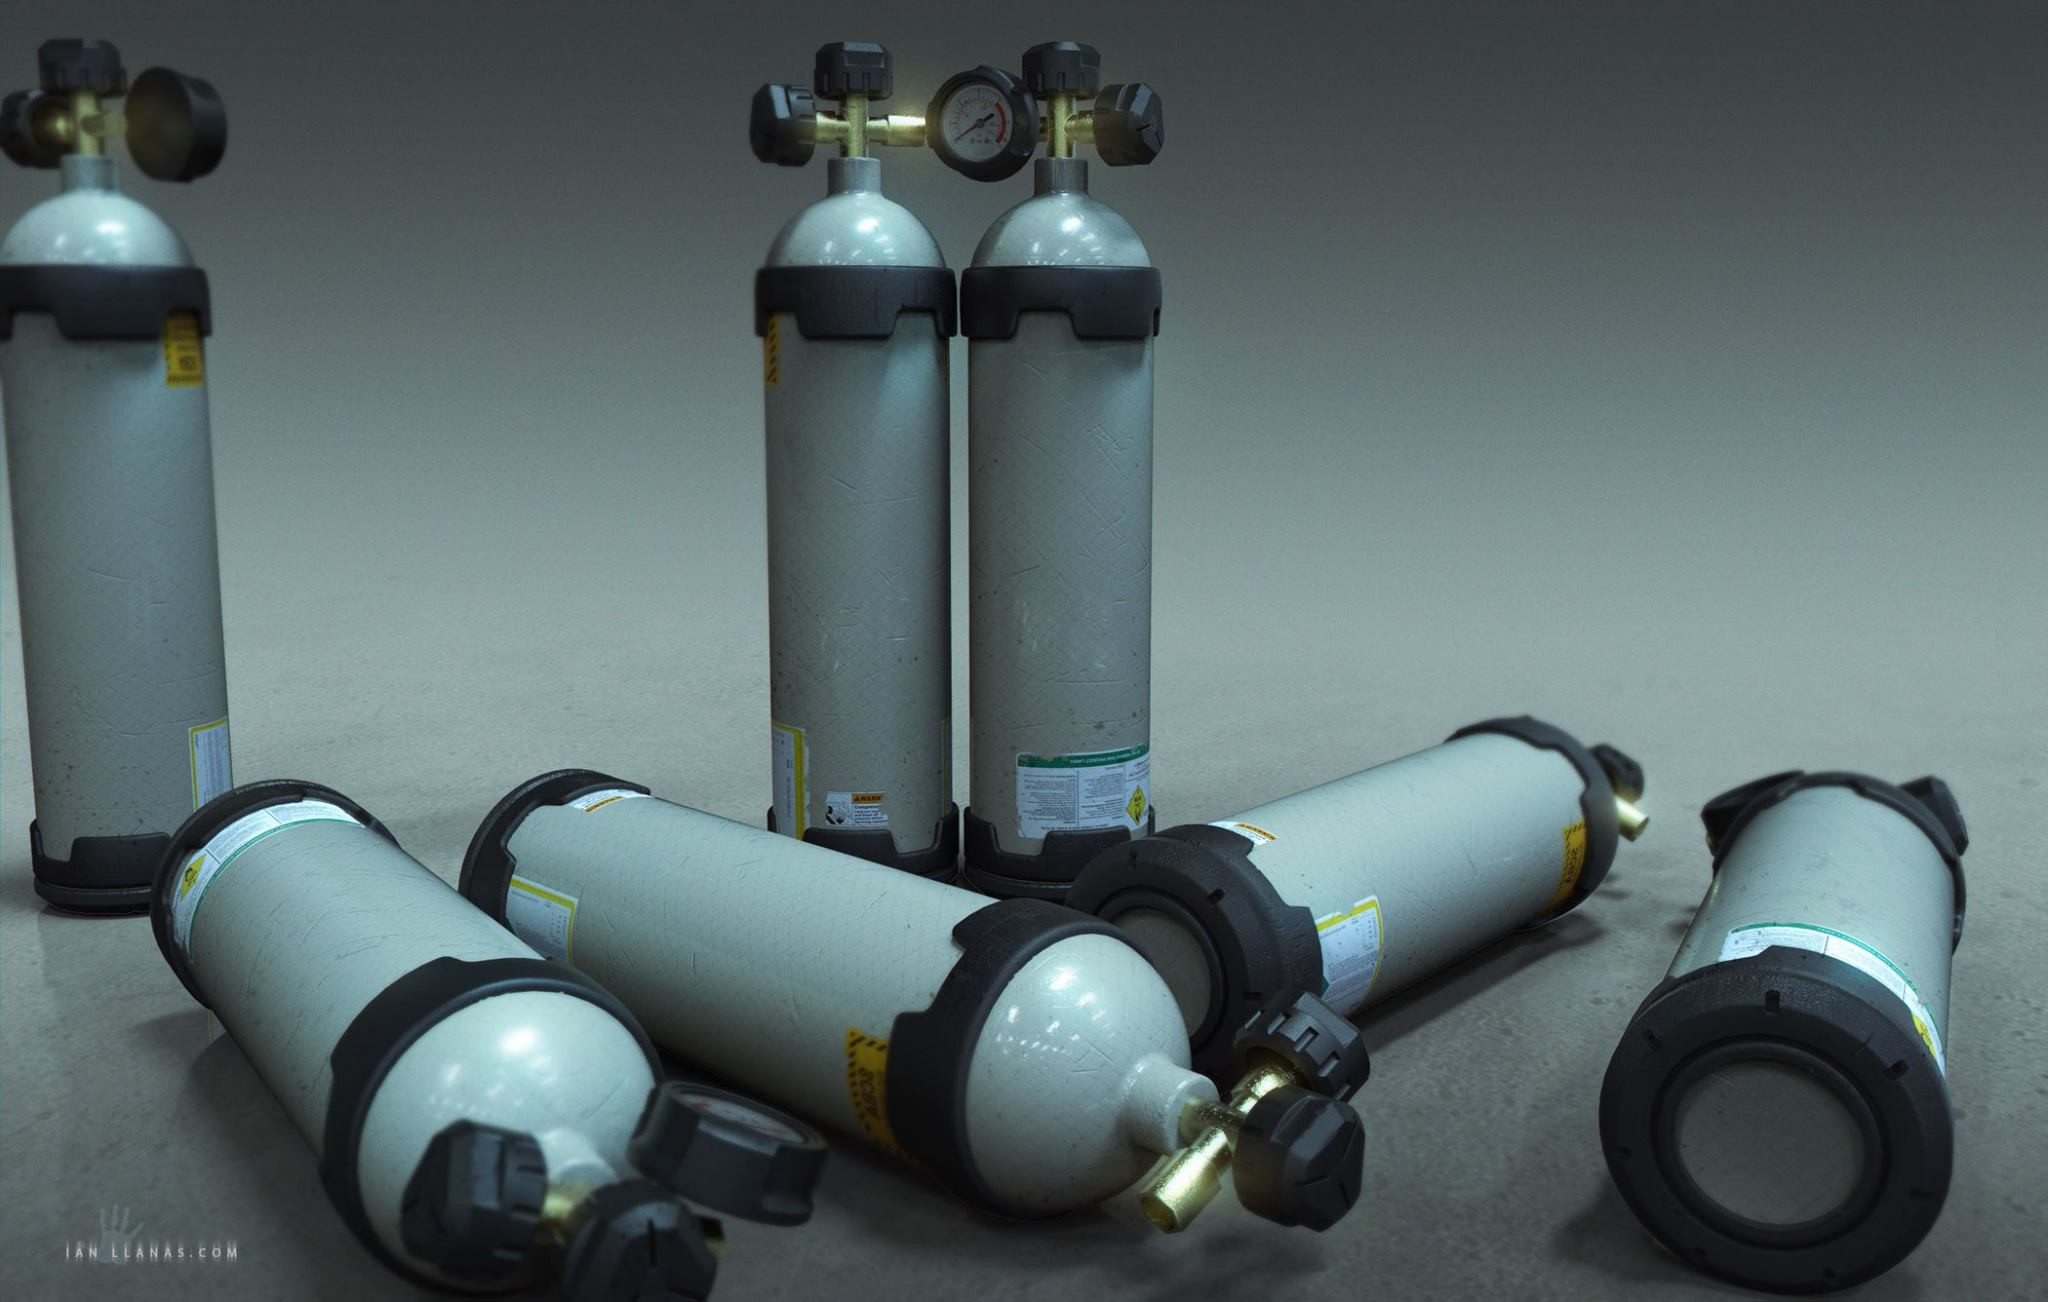 The oxygen tanks